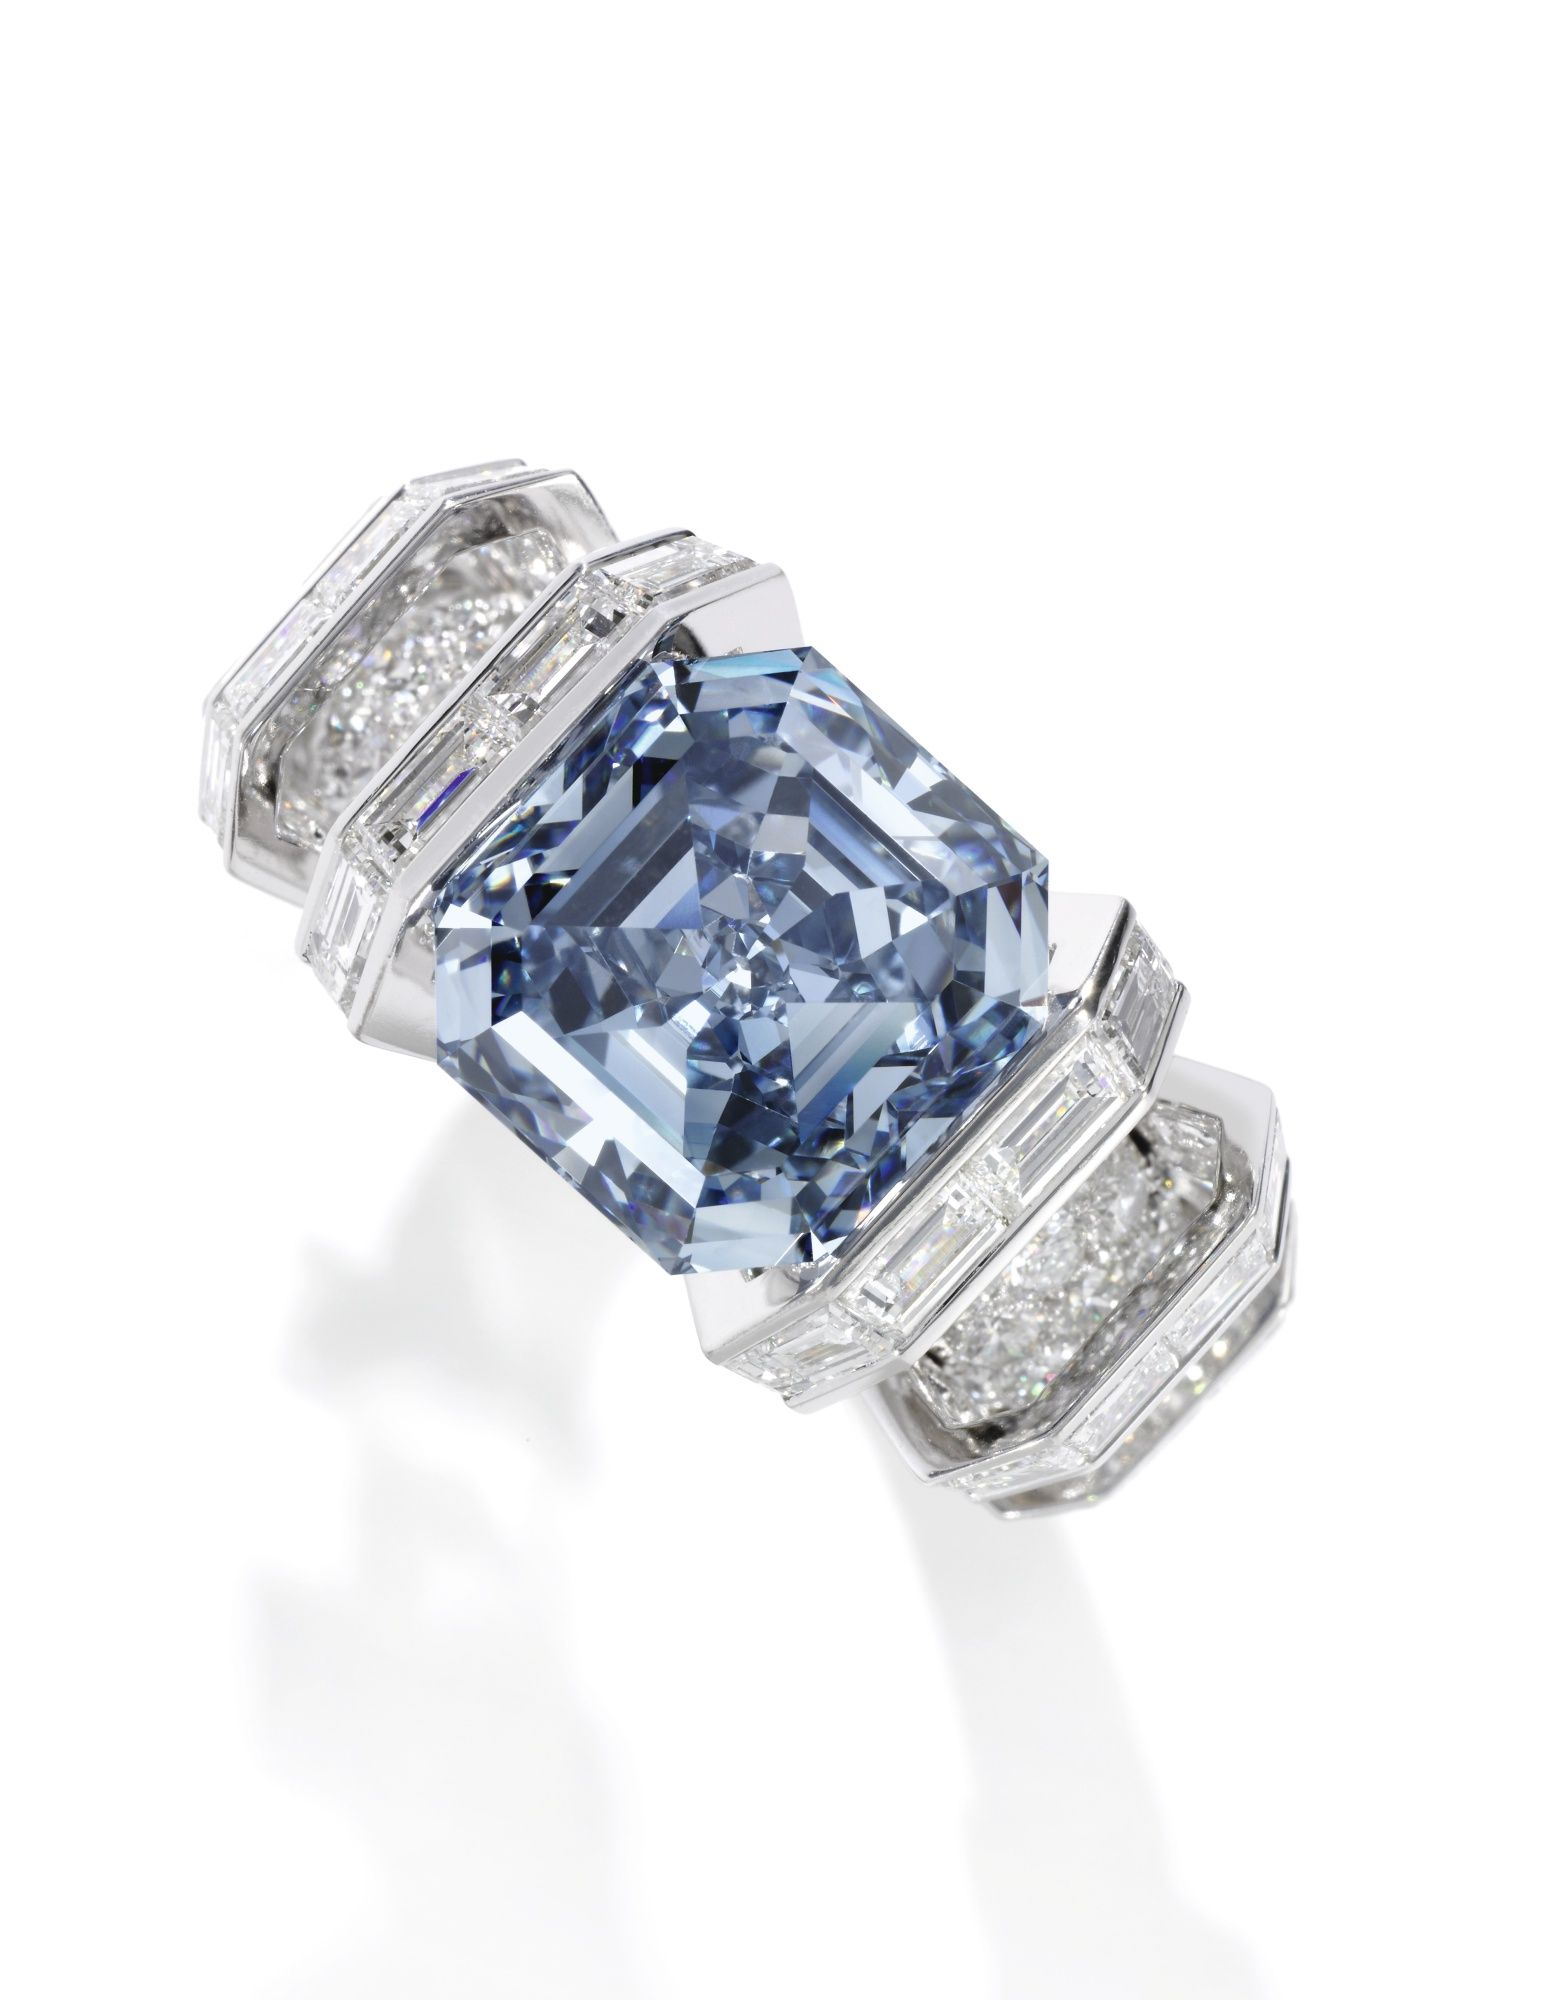 "The Sky Blue Diamond"" Superb 8 01 carats Type IIb fancy vivid"